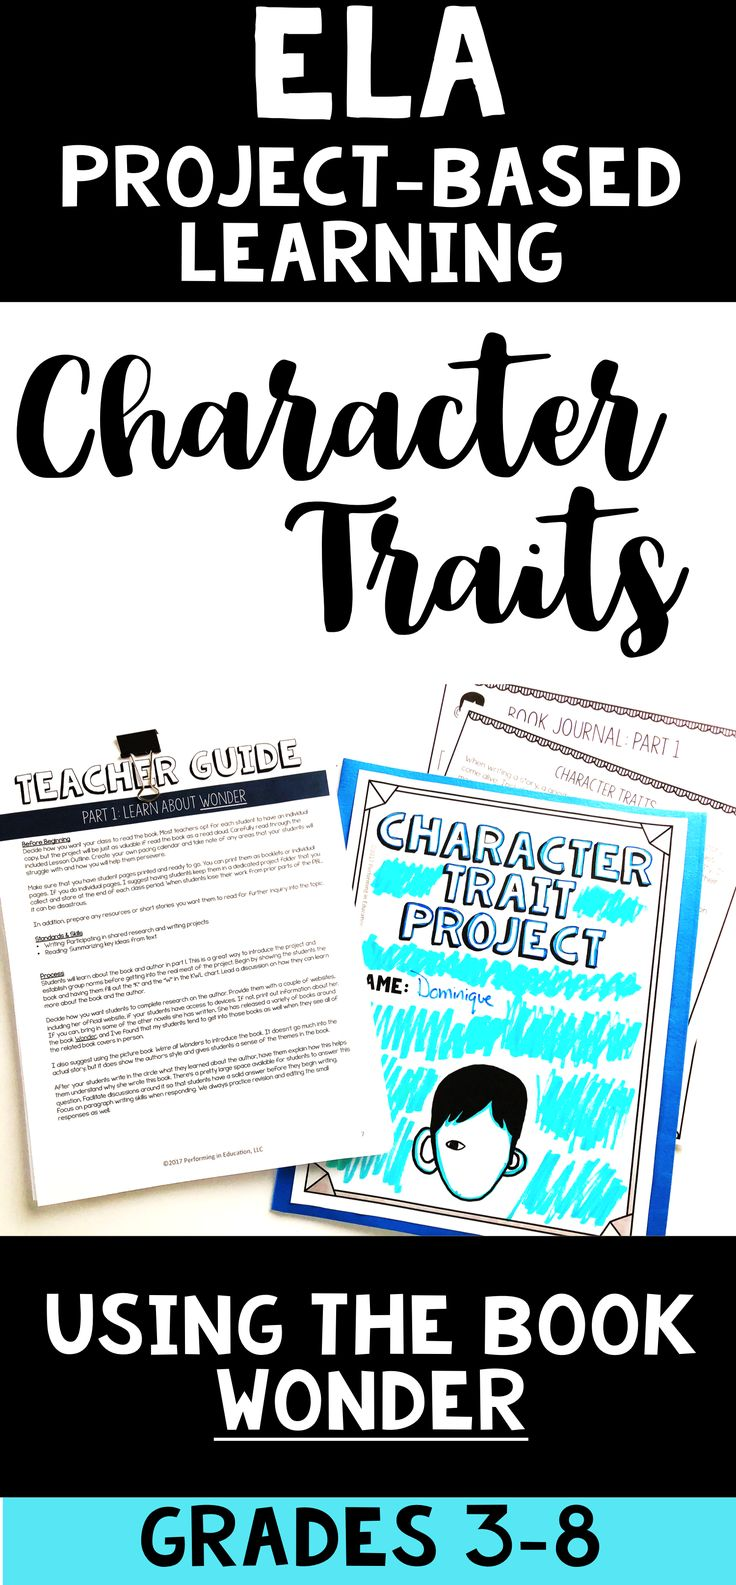 Teach character traits with this awesome project-based learning activity. This PBL uses the book Wonder by R. J. Palacio (as a read aloud - 1 copy - or novel study - multiple copies) to show character traits in real literature. It has all of the elements of project-based learning and includes both print and digital student pages!